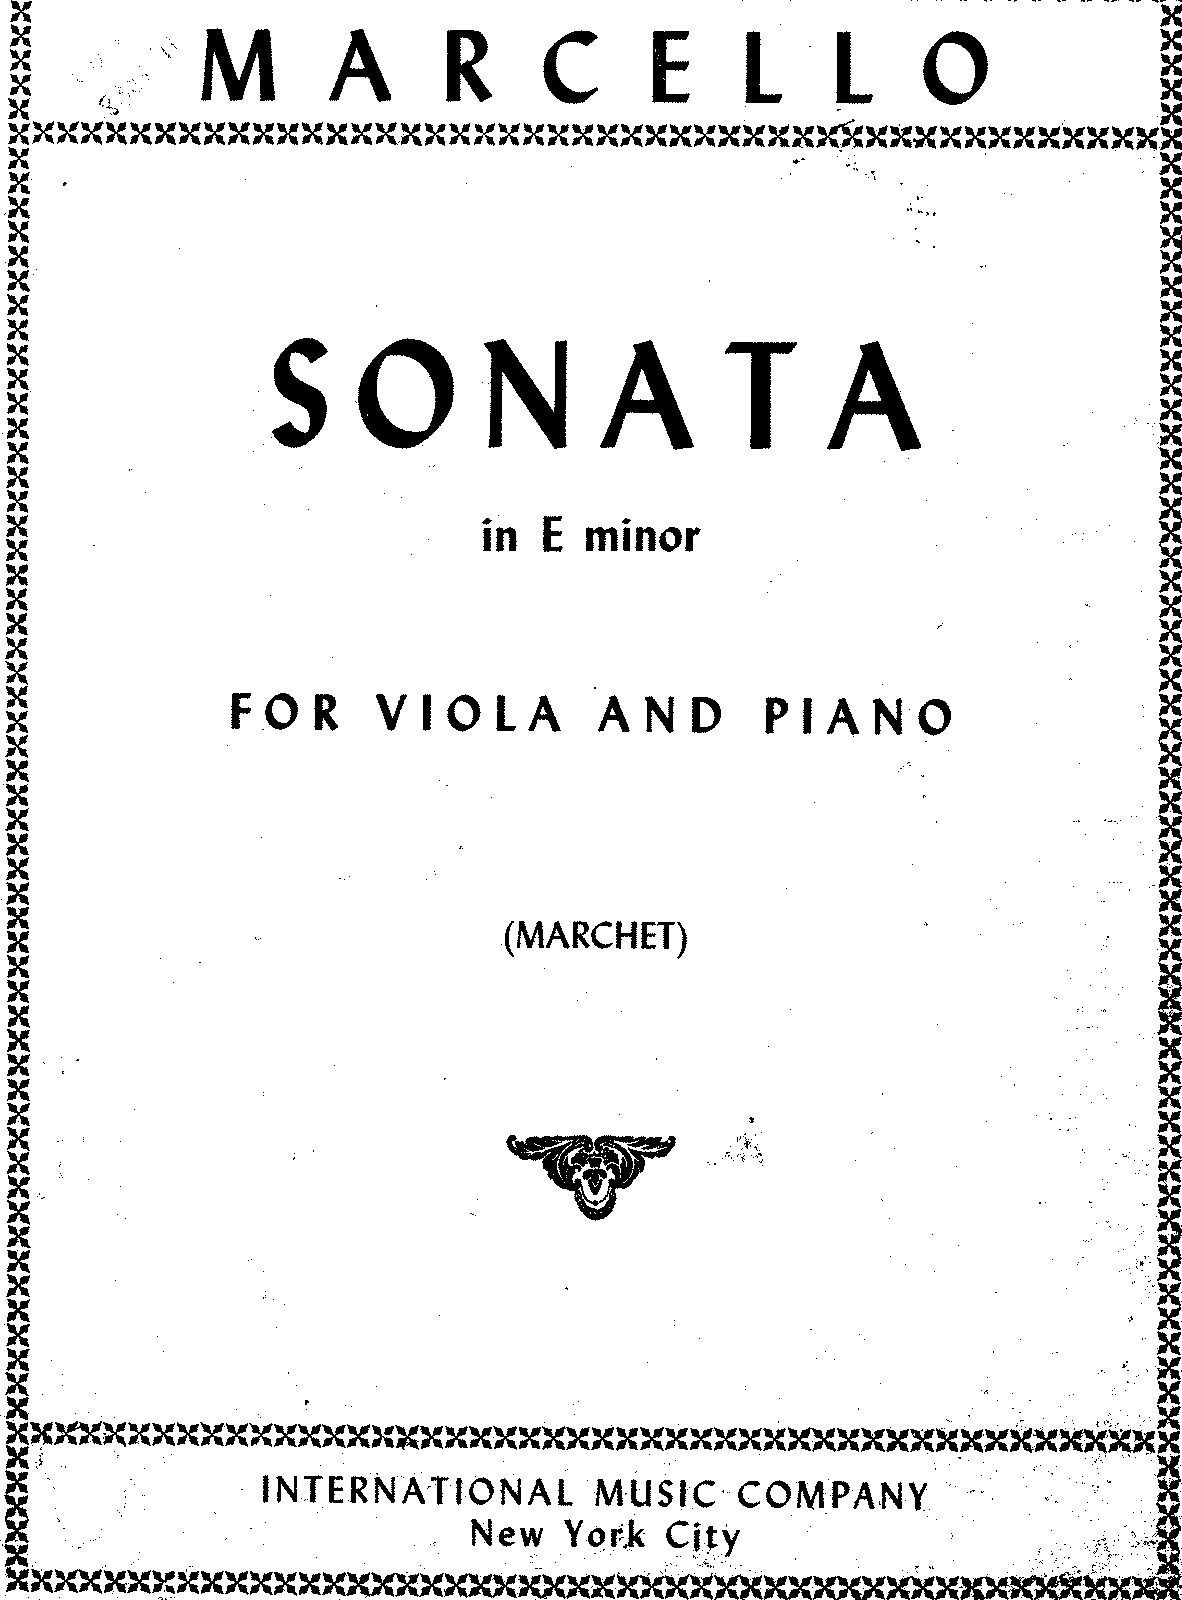 PMLP62695-Marcello - Sonata in E minor (viola and piano).pdf